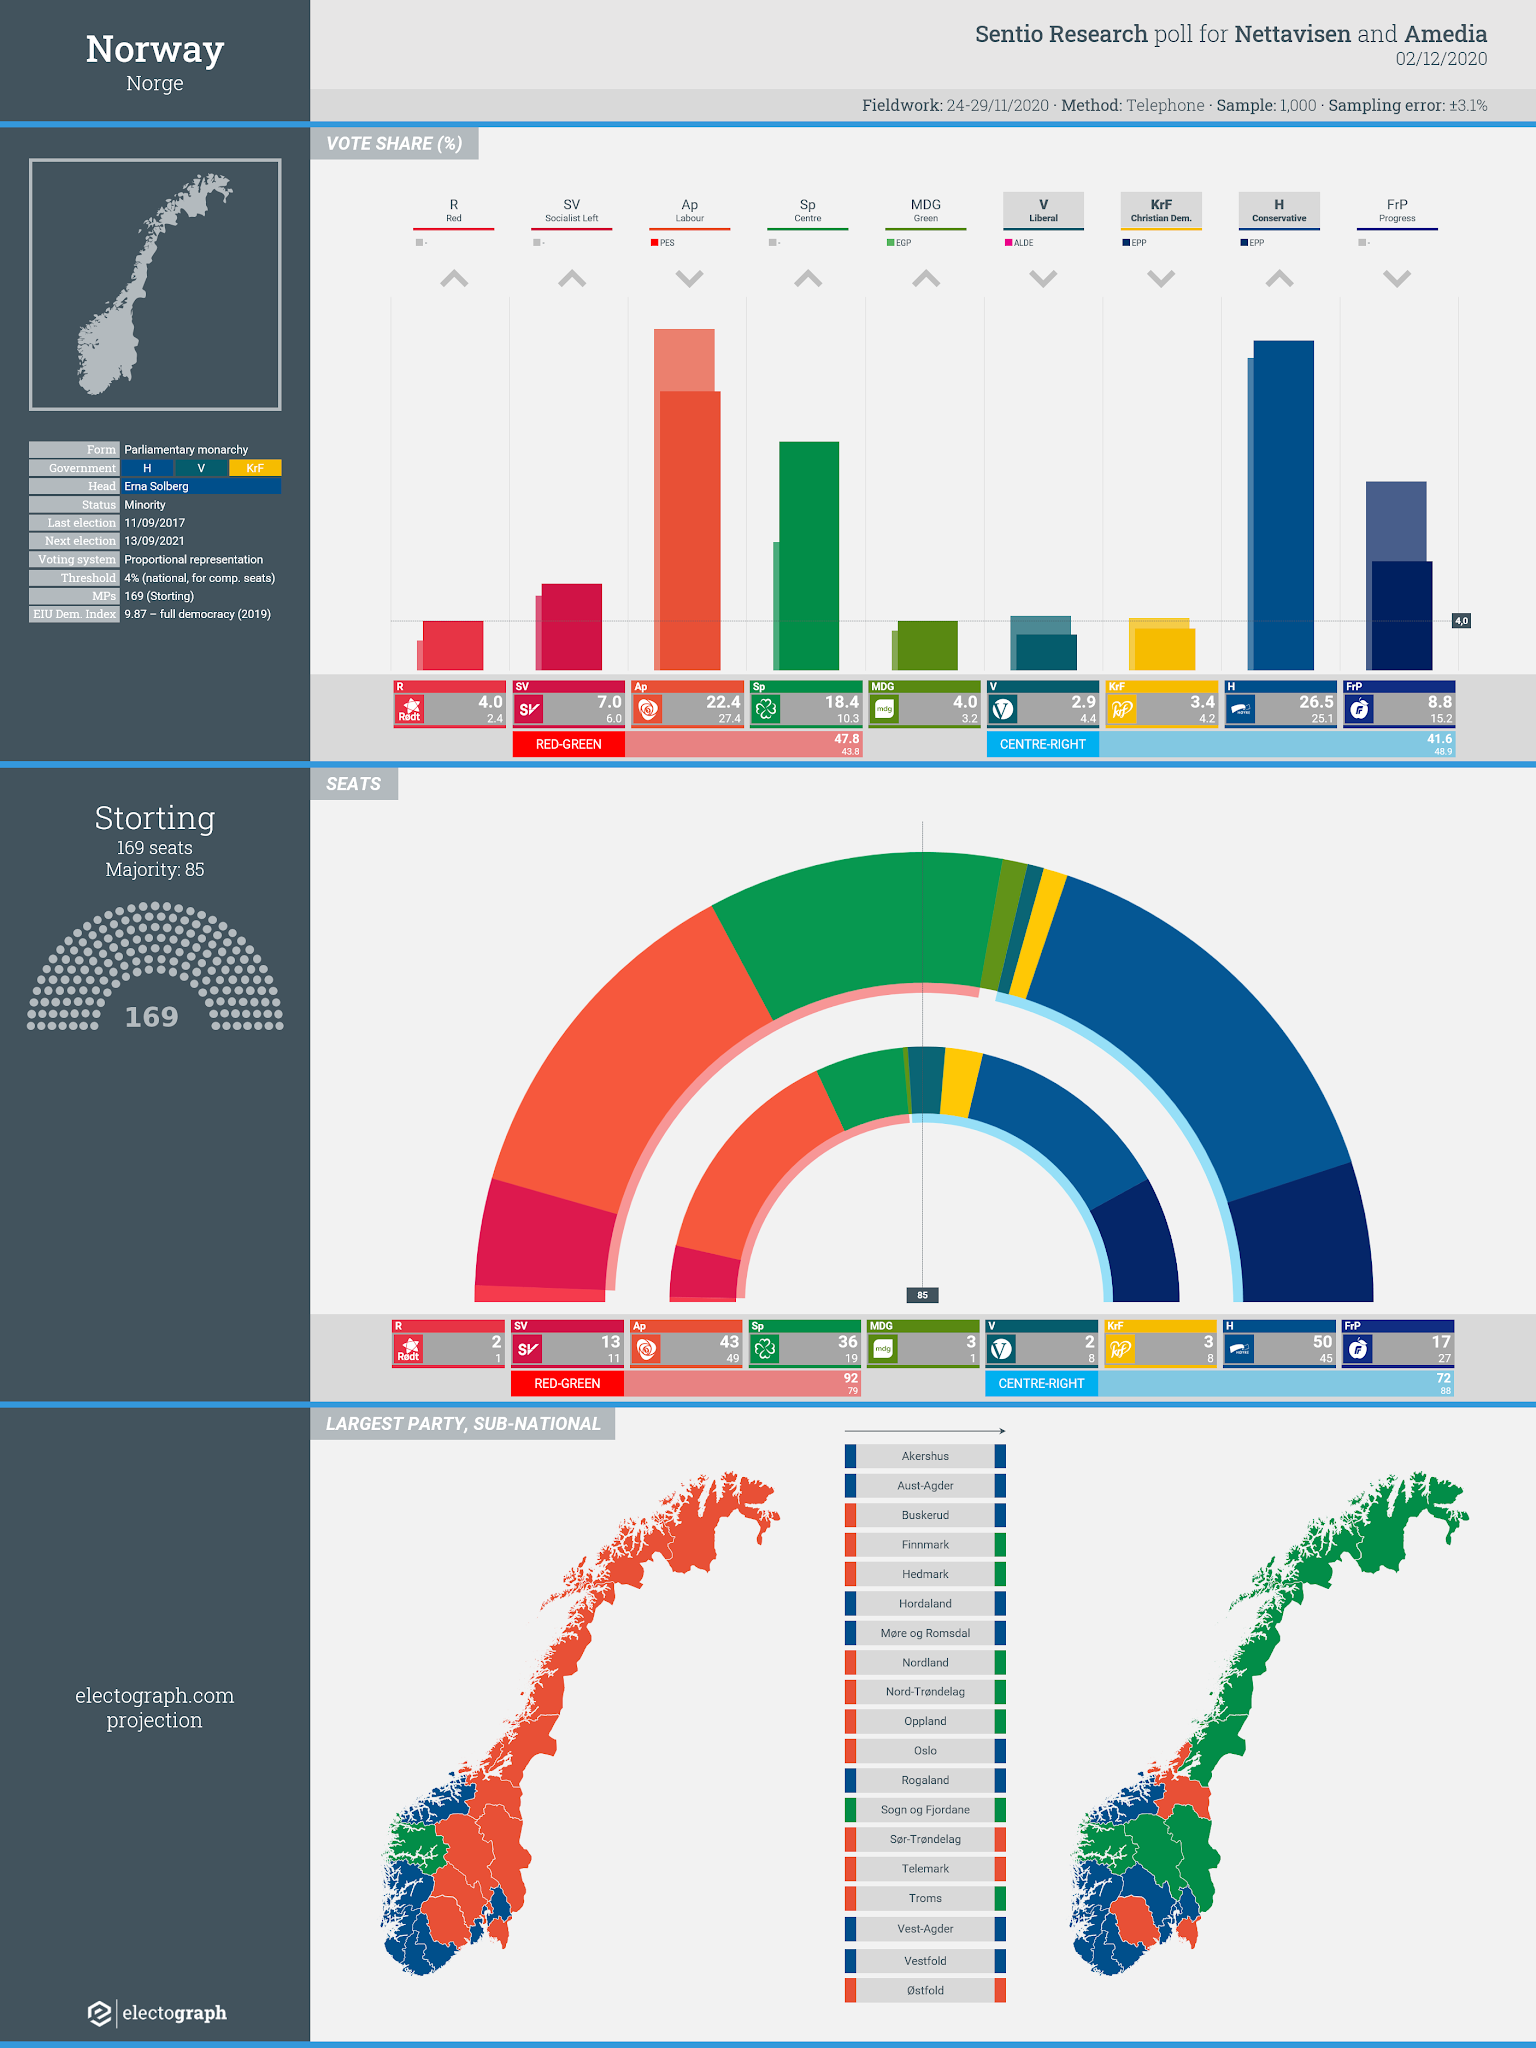 NORWAY: Sentio Research poll chart for Nettavisen and Amedia, 2 December 2020